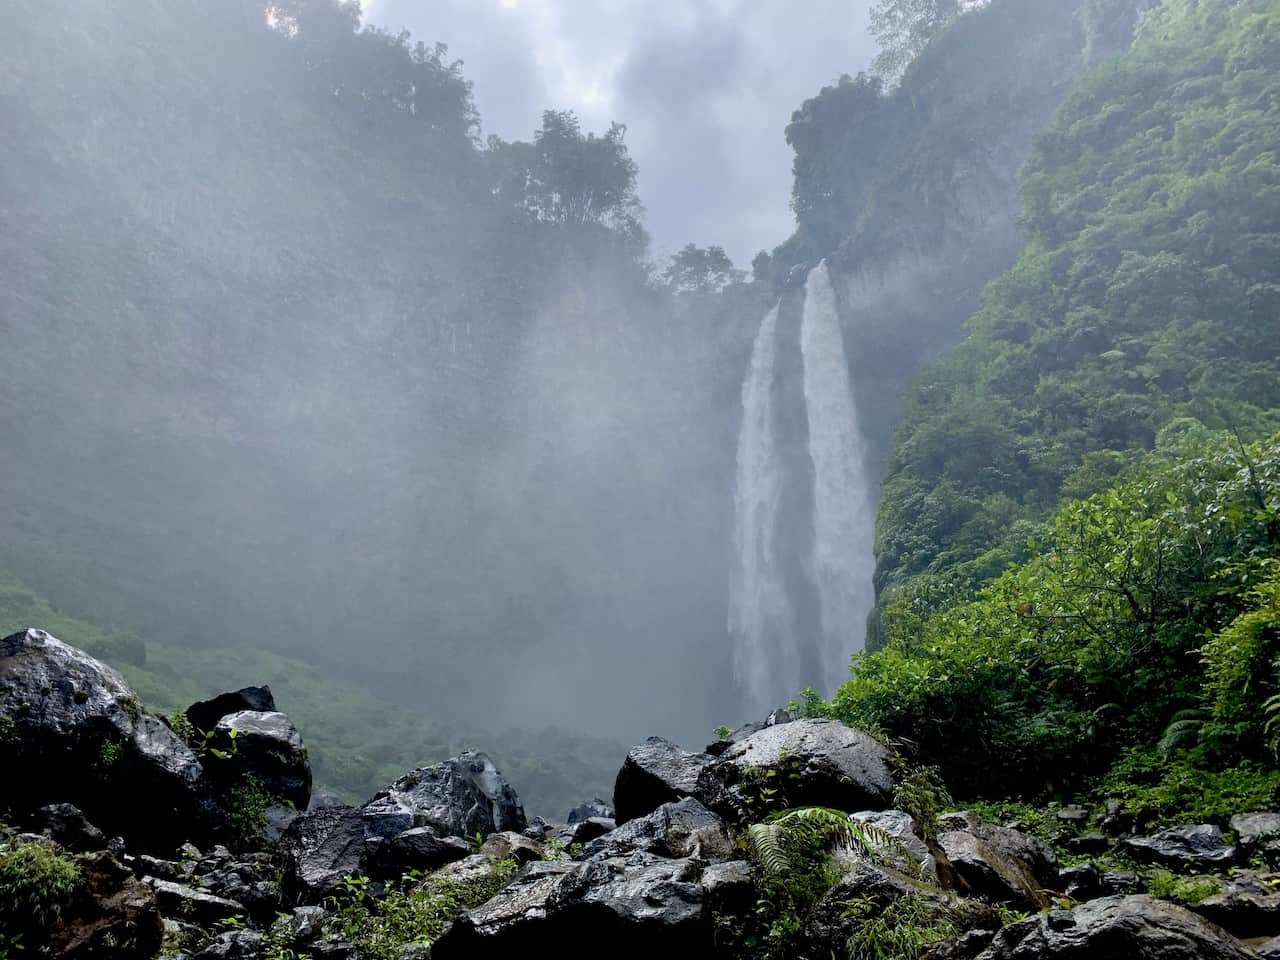 Coban Sriti Waterfall Hike